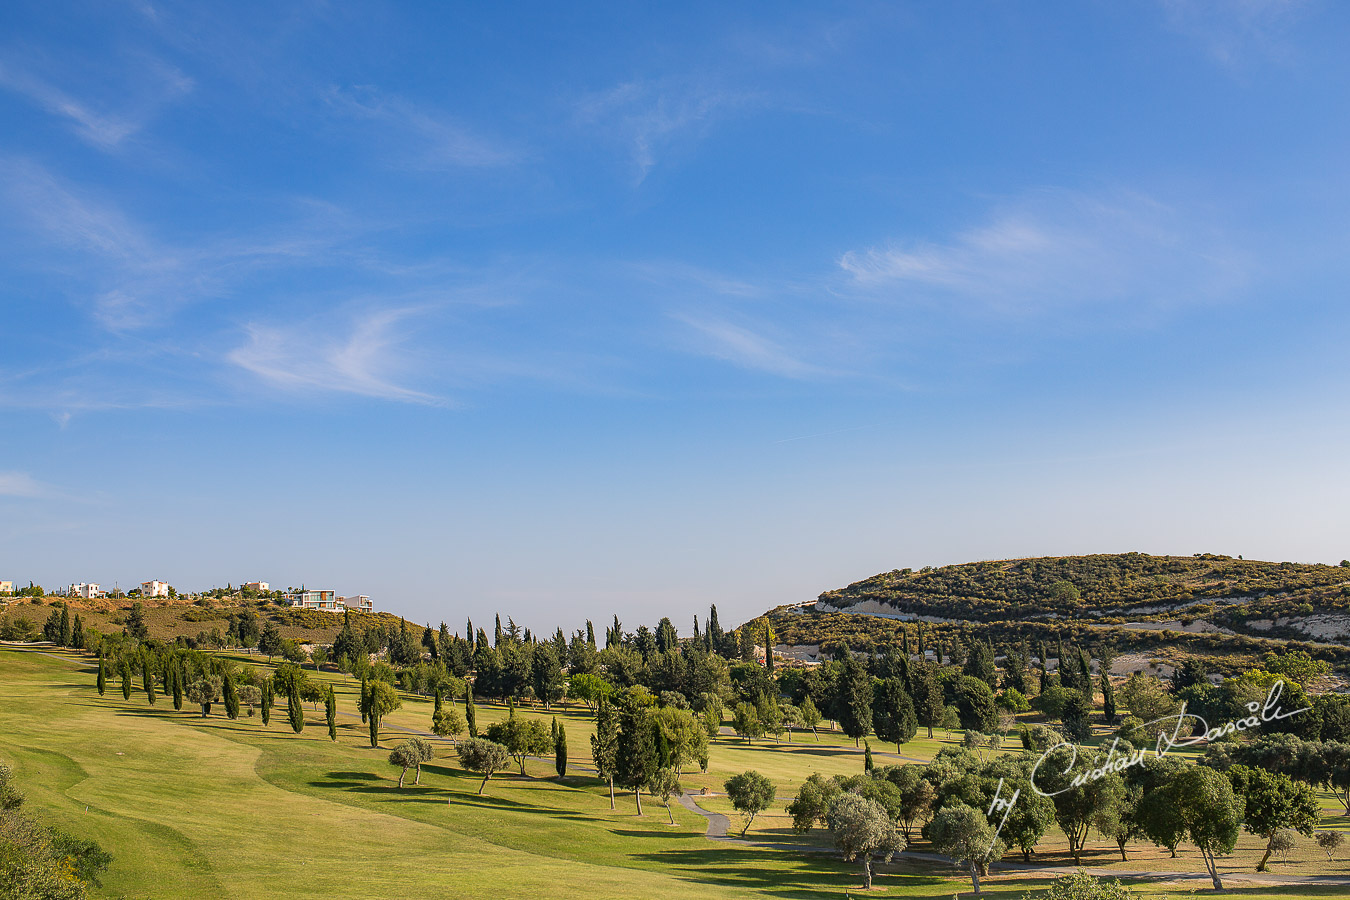 Beautiful landscape captured at a a wedding at Minthis Hills in Cyprus, by Cristian Dascalu.